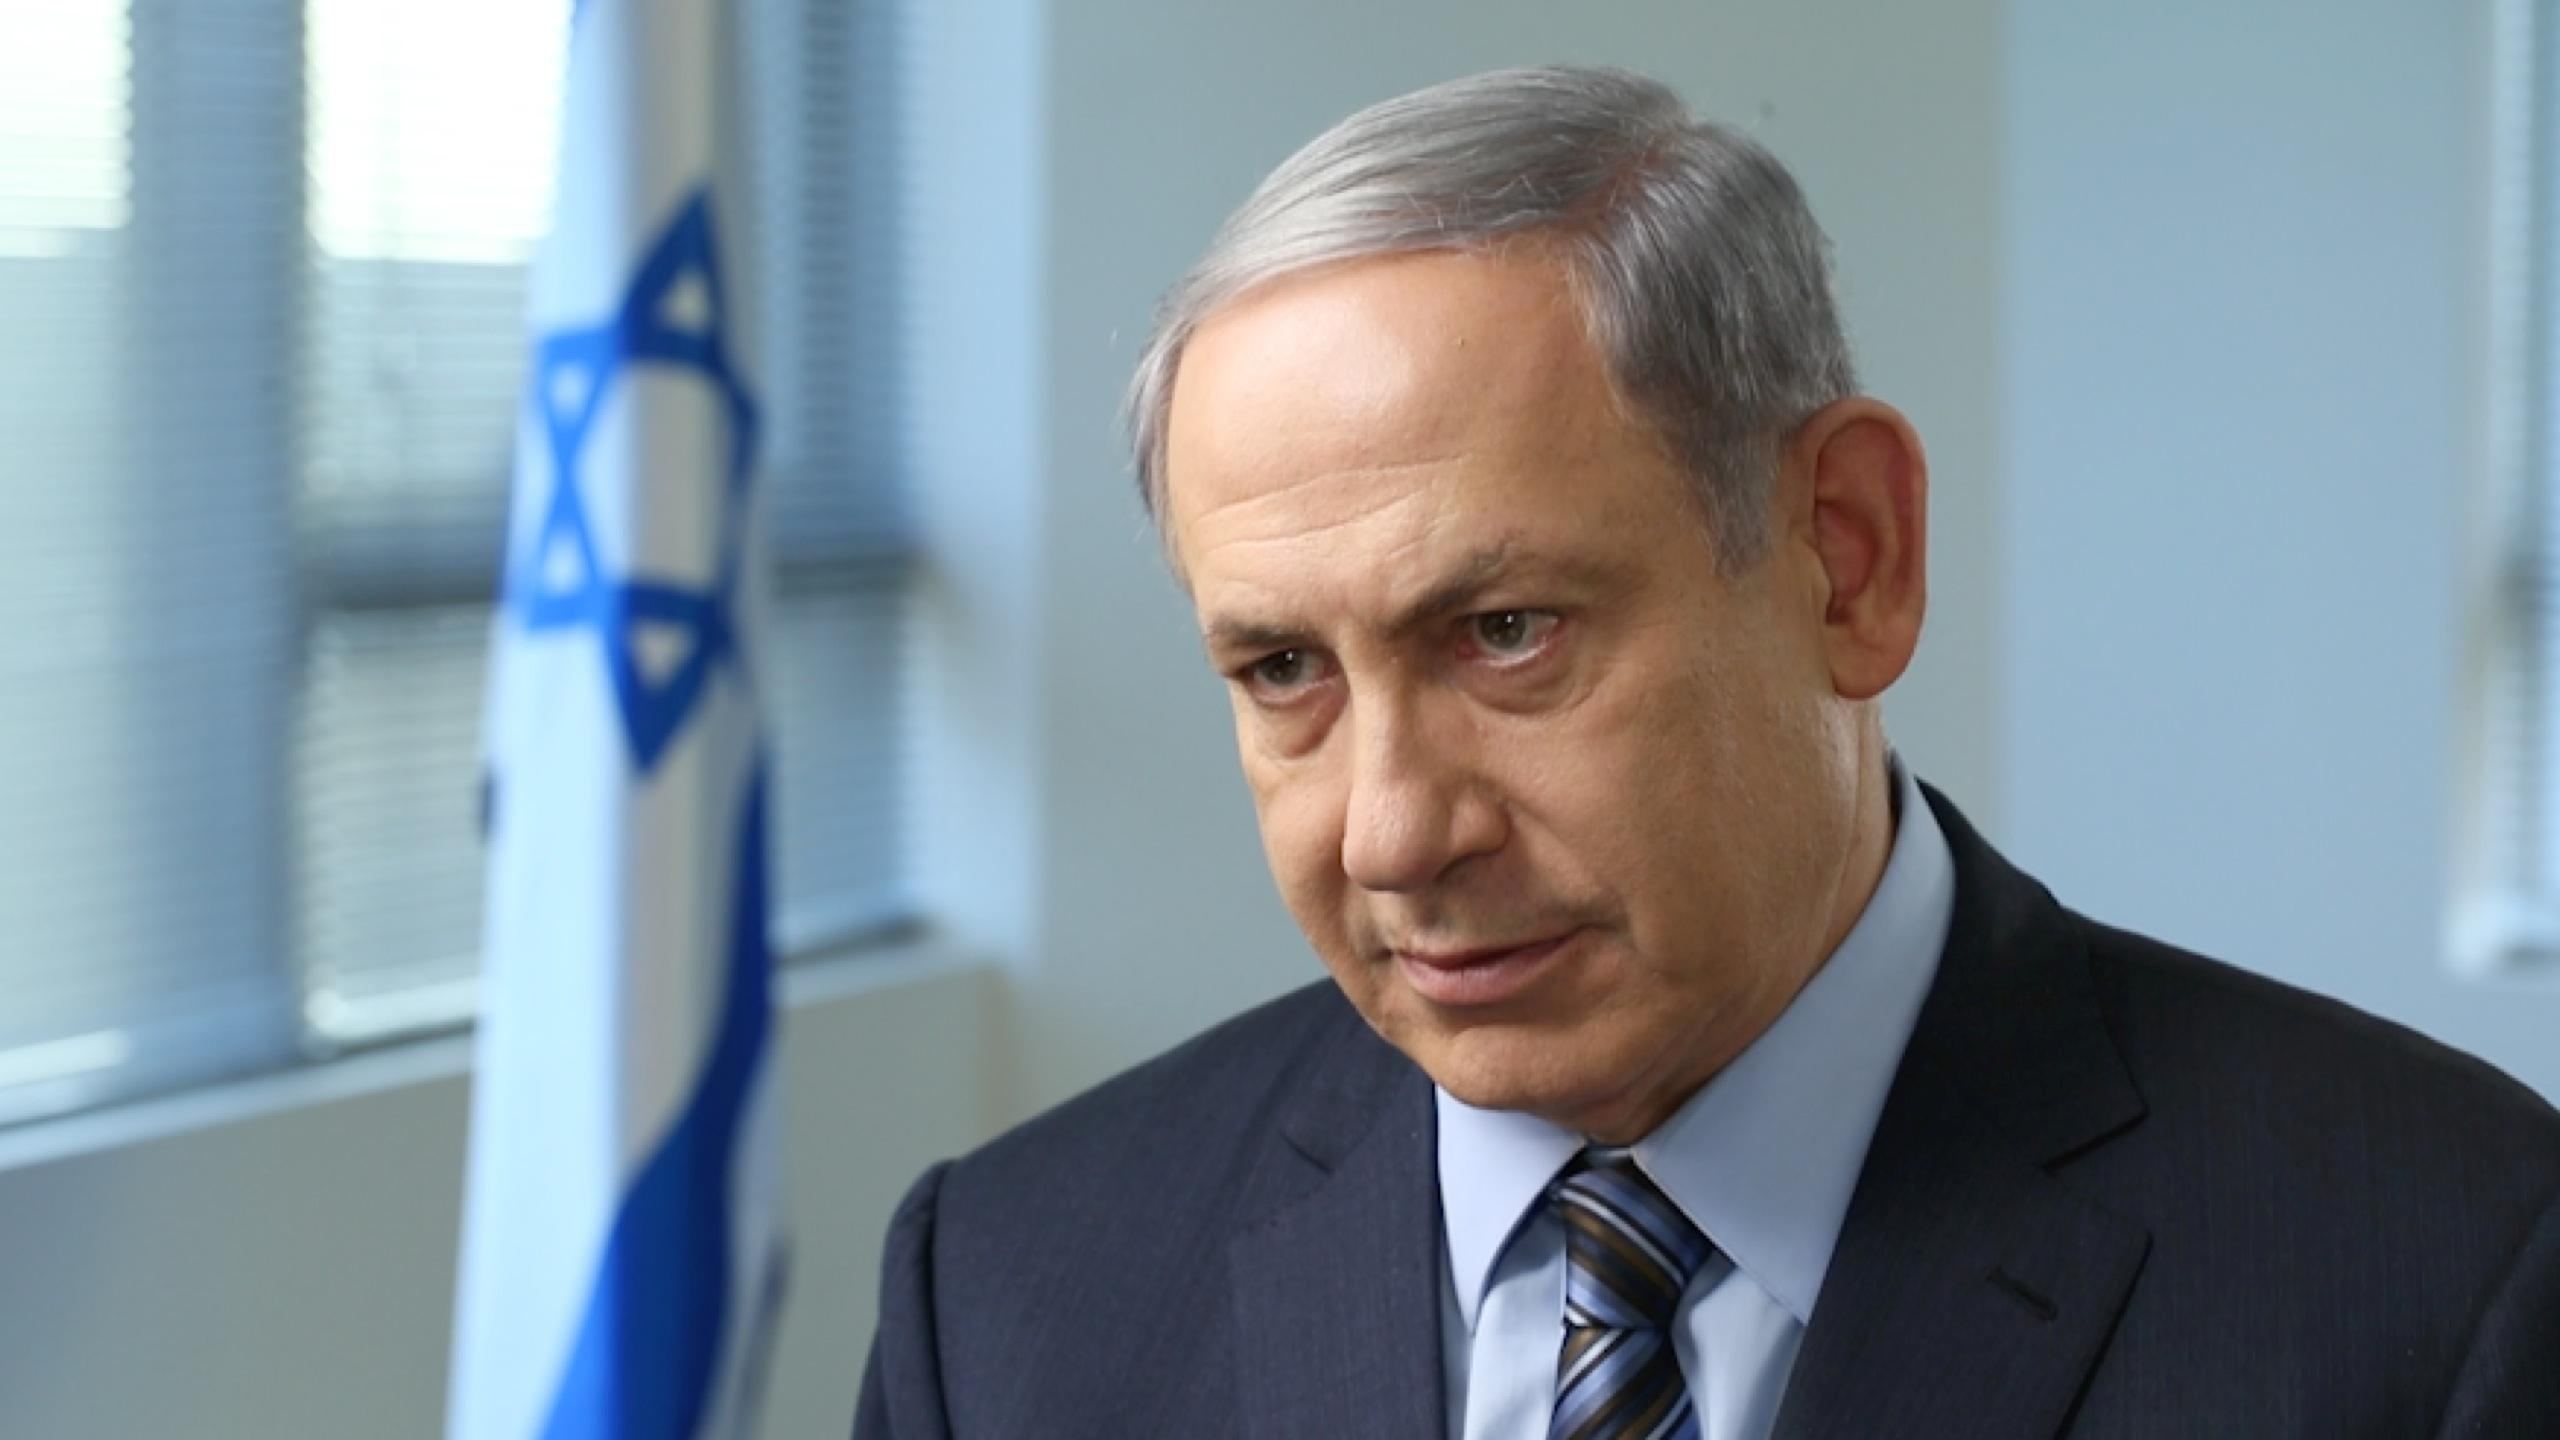 Why Iran Deal Is So Deadly: Israeli Prime Minister Netanyahu Talks With Steve Forbes